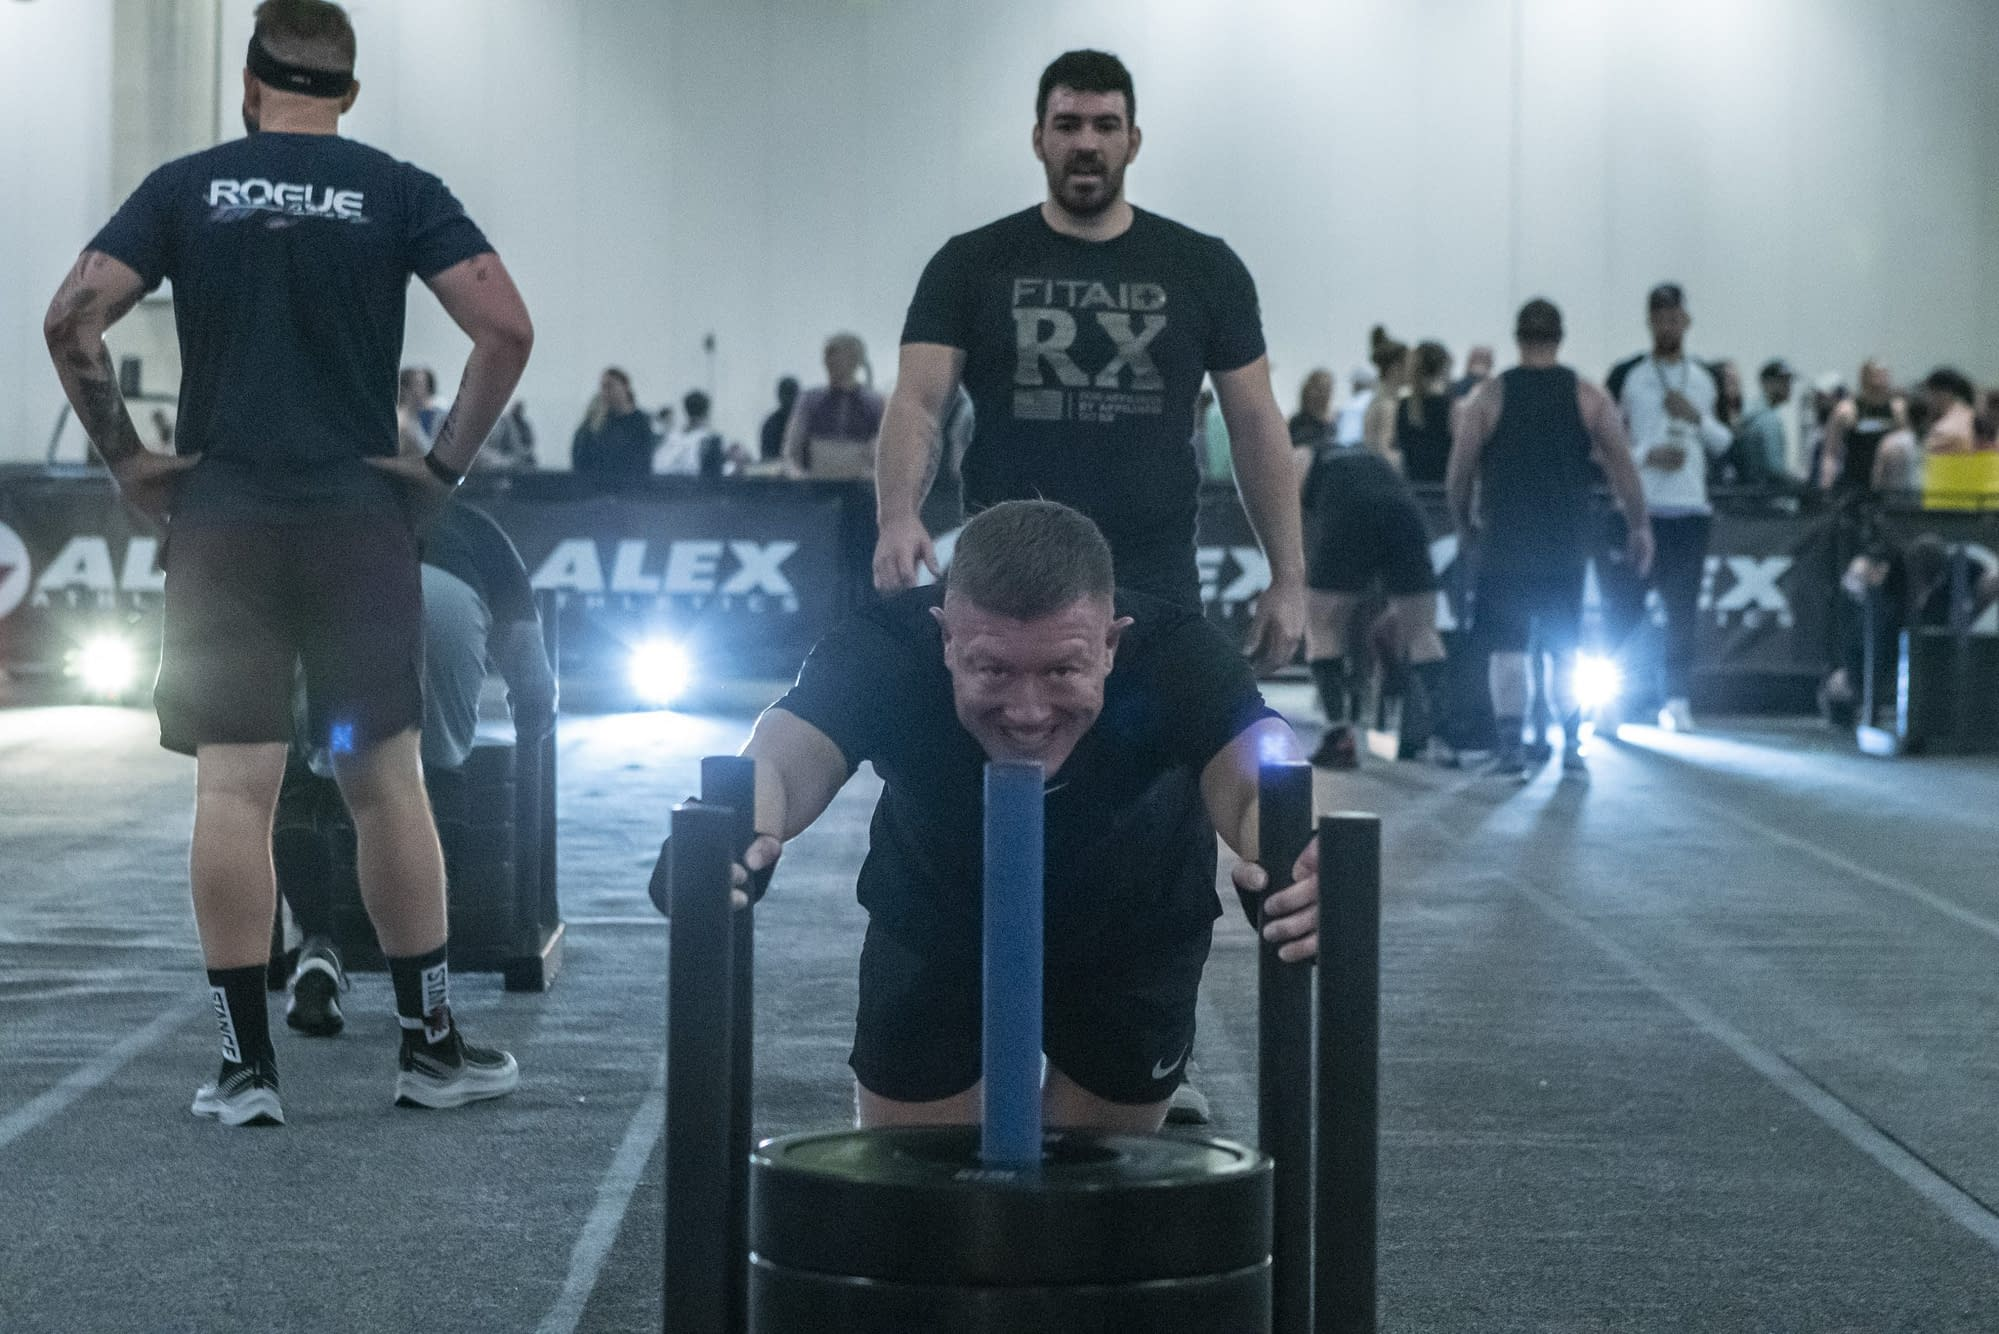 SLED PUSH DALLAS DOUBLES